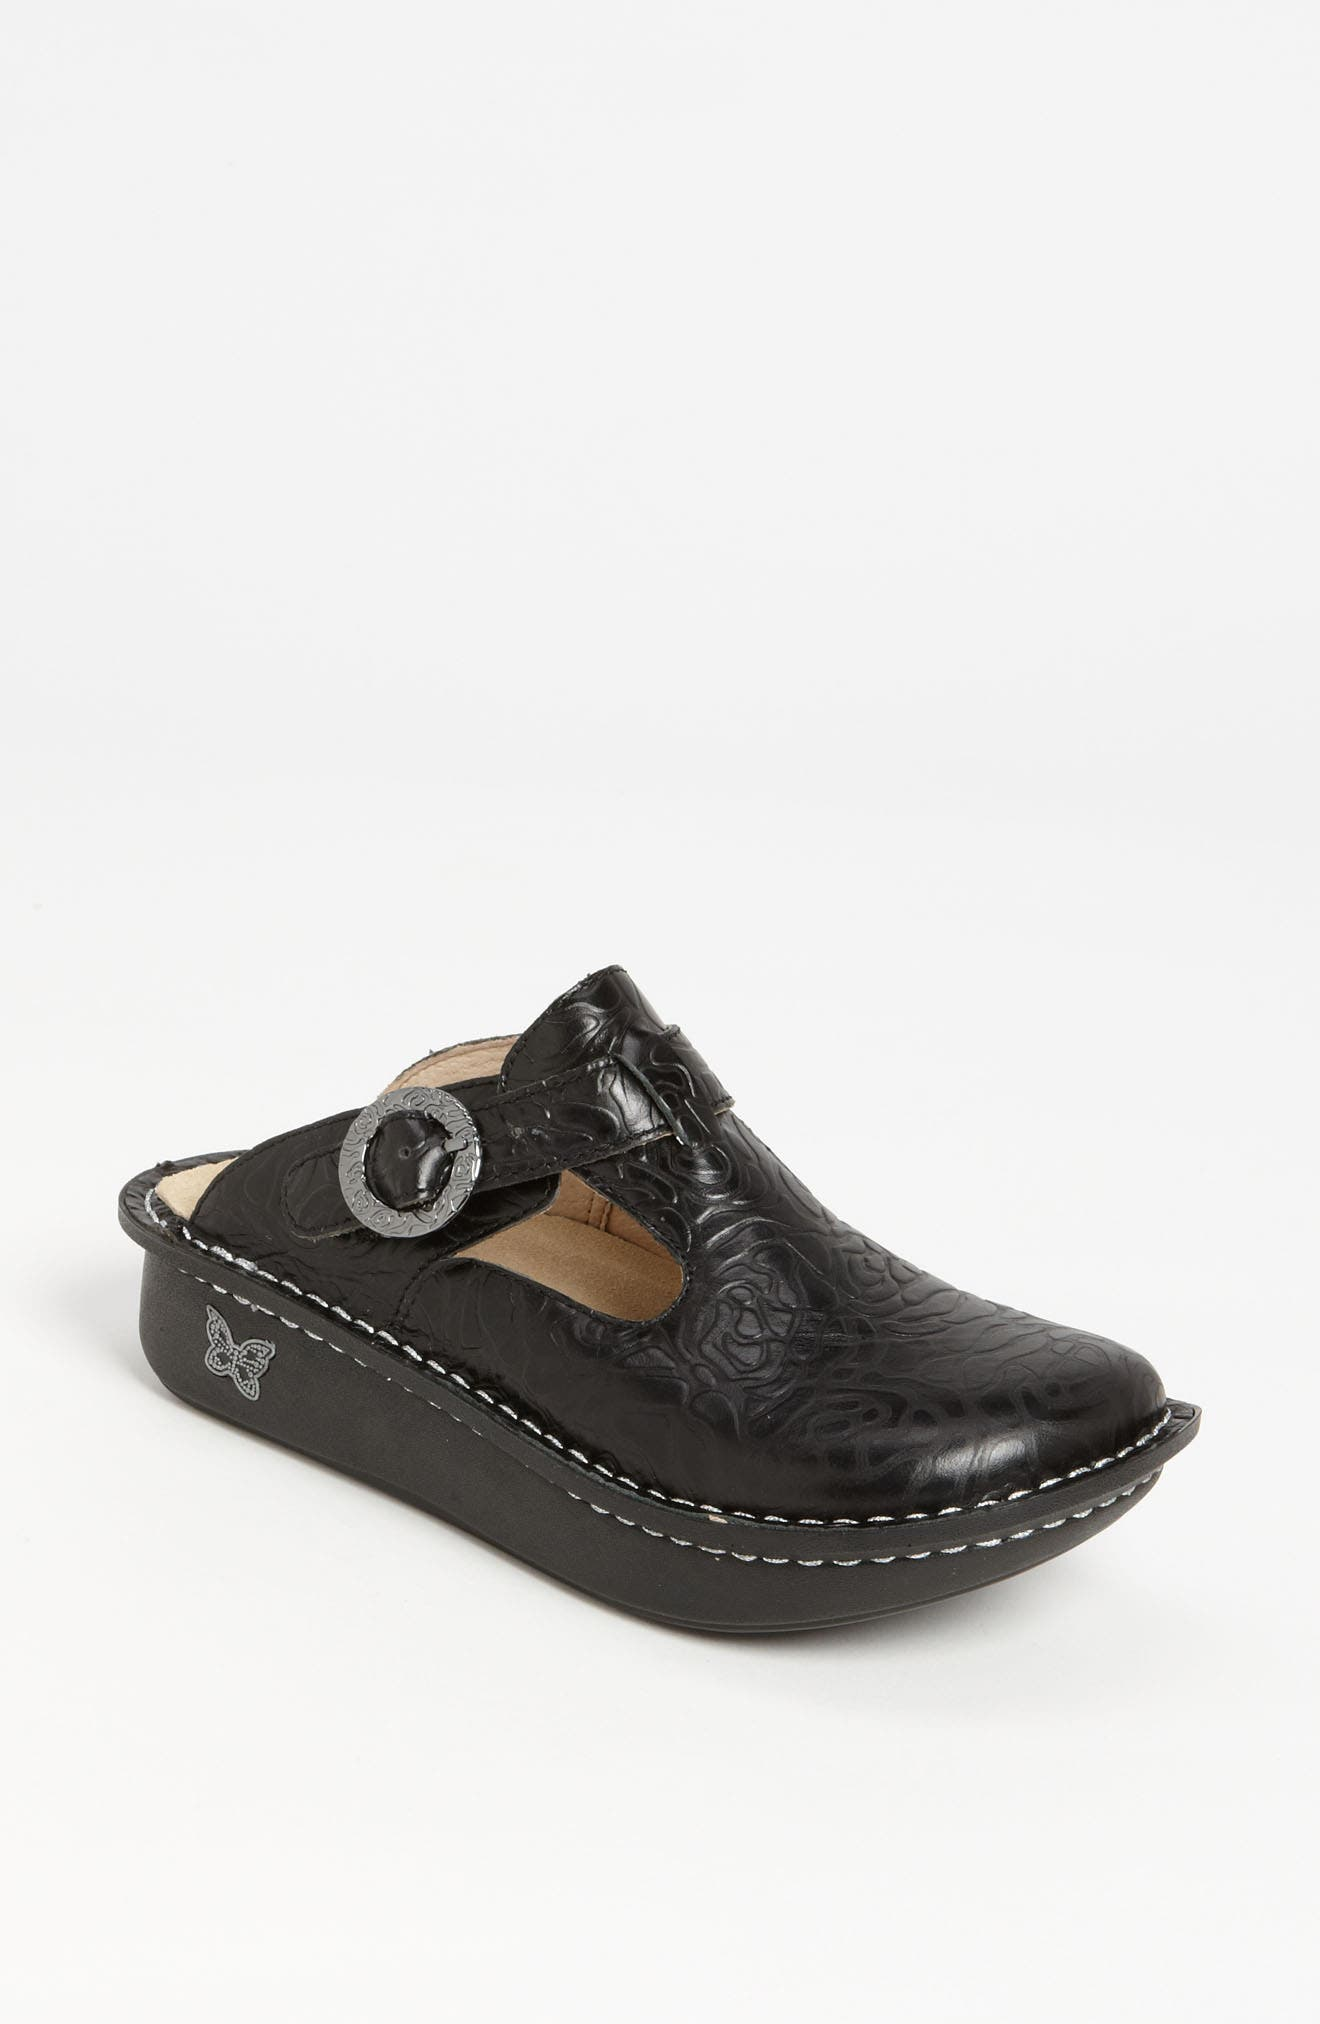 'Classic' Clog,                         Main,                         color, Black Embossed Rose Leather